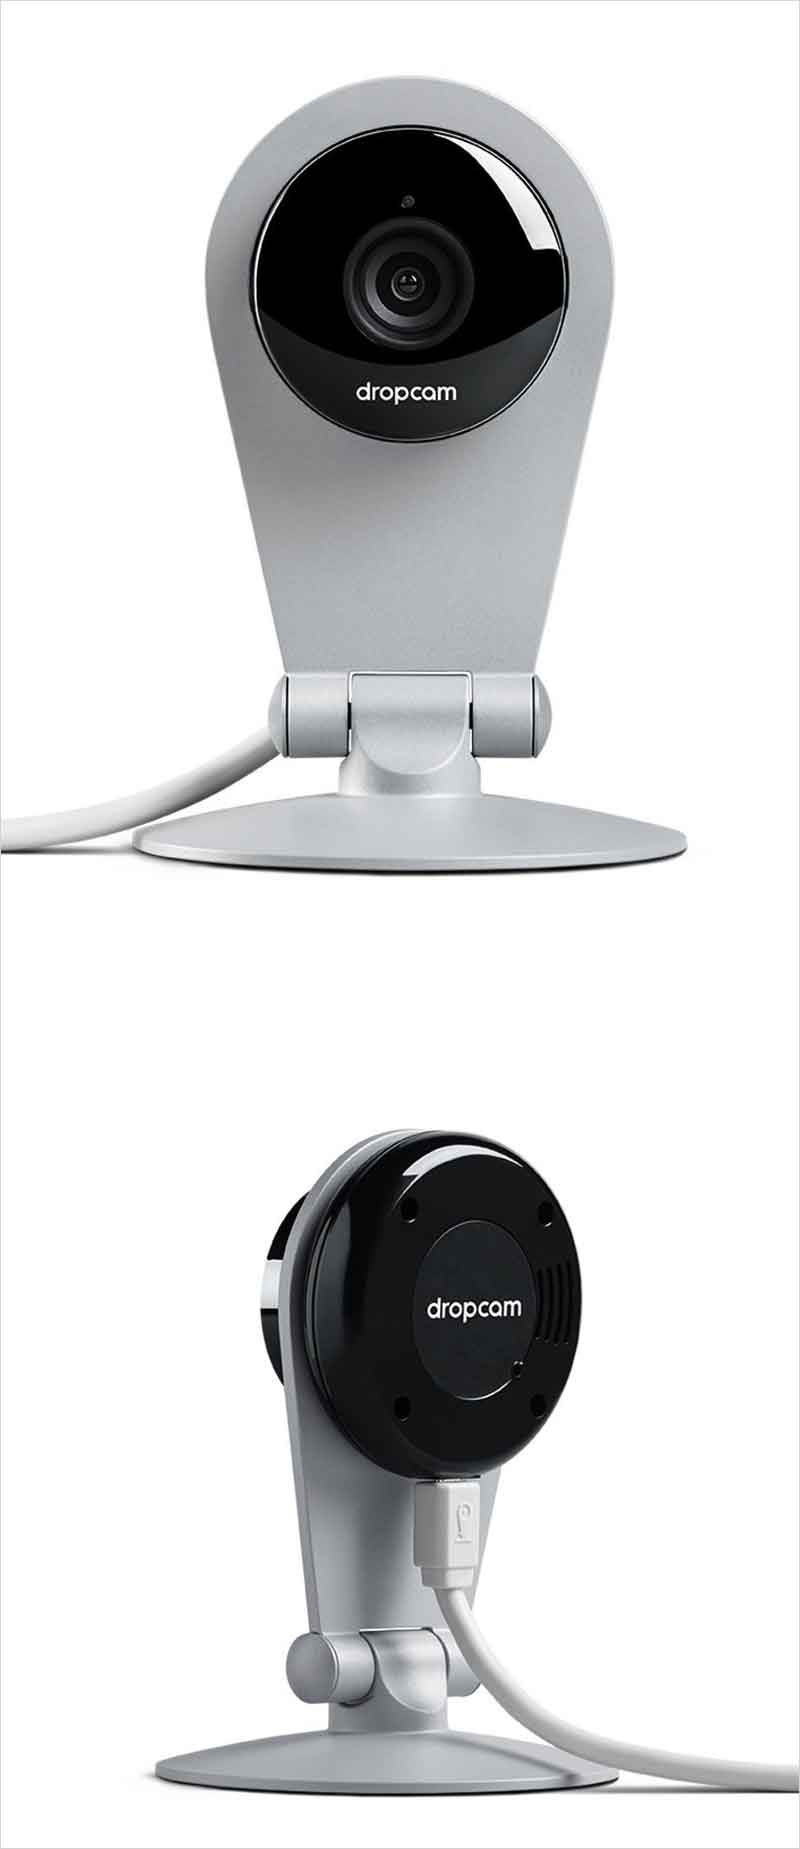 Dropcam-Wi-Fi-Wireless-Video-Monitoring-Camera